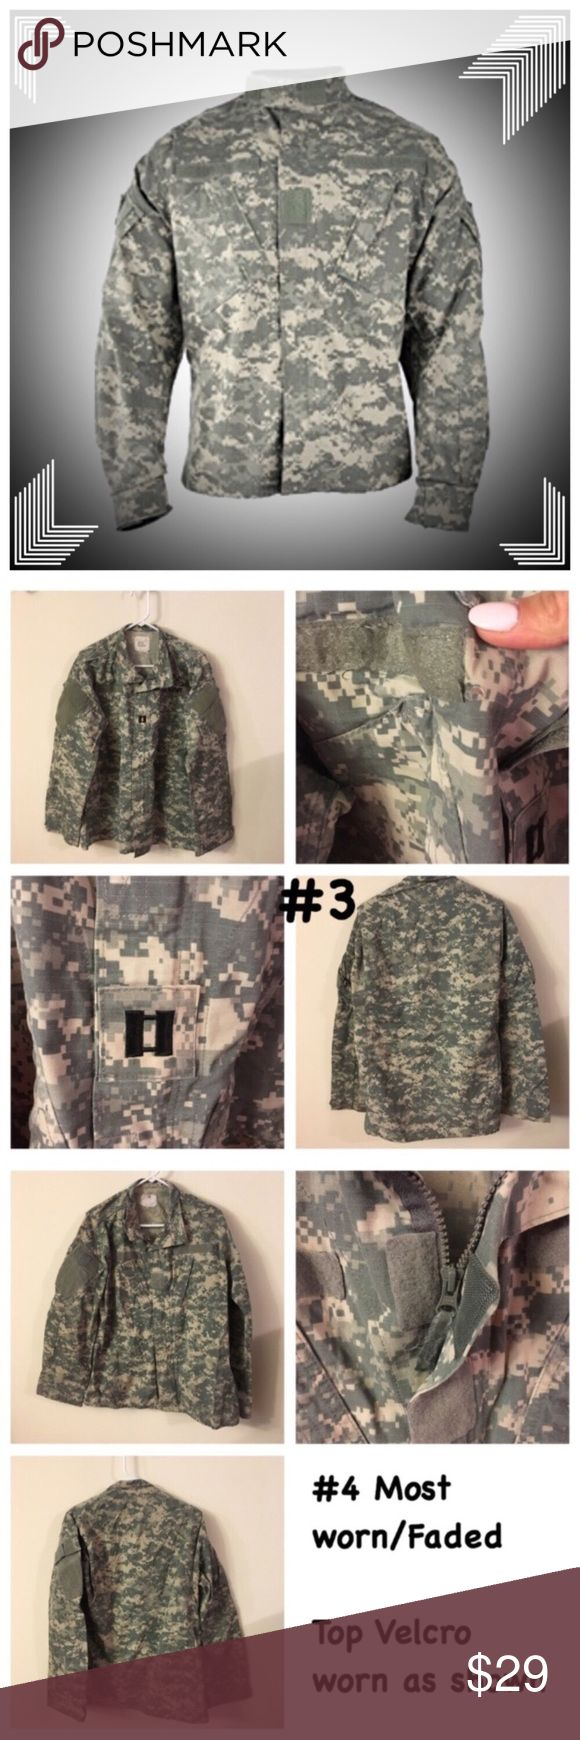 Army Combat Uniform ACU Medium-Long ❤Same day shipping (excluding Sun/holidays or orders placed after P.O. Closed)  PRICE FIRM unless bundled. ❤  Price is for 1 top! Size Medium Long Army Combat Uniform Tops. Each photo is front/back of each separate Top. Gender neutral uniforms. Normal wear from use but free from holes/stains (Except #3 has a small hole where name tape was removed). Smoke/pet free home. Some of the labels have writing. My husband had a system to keep tops/bottoms together…